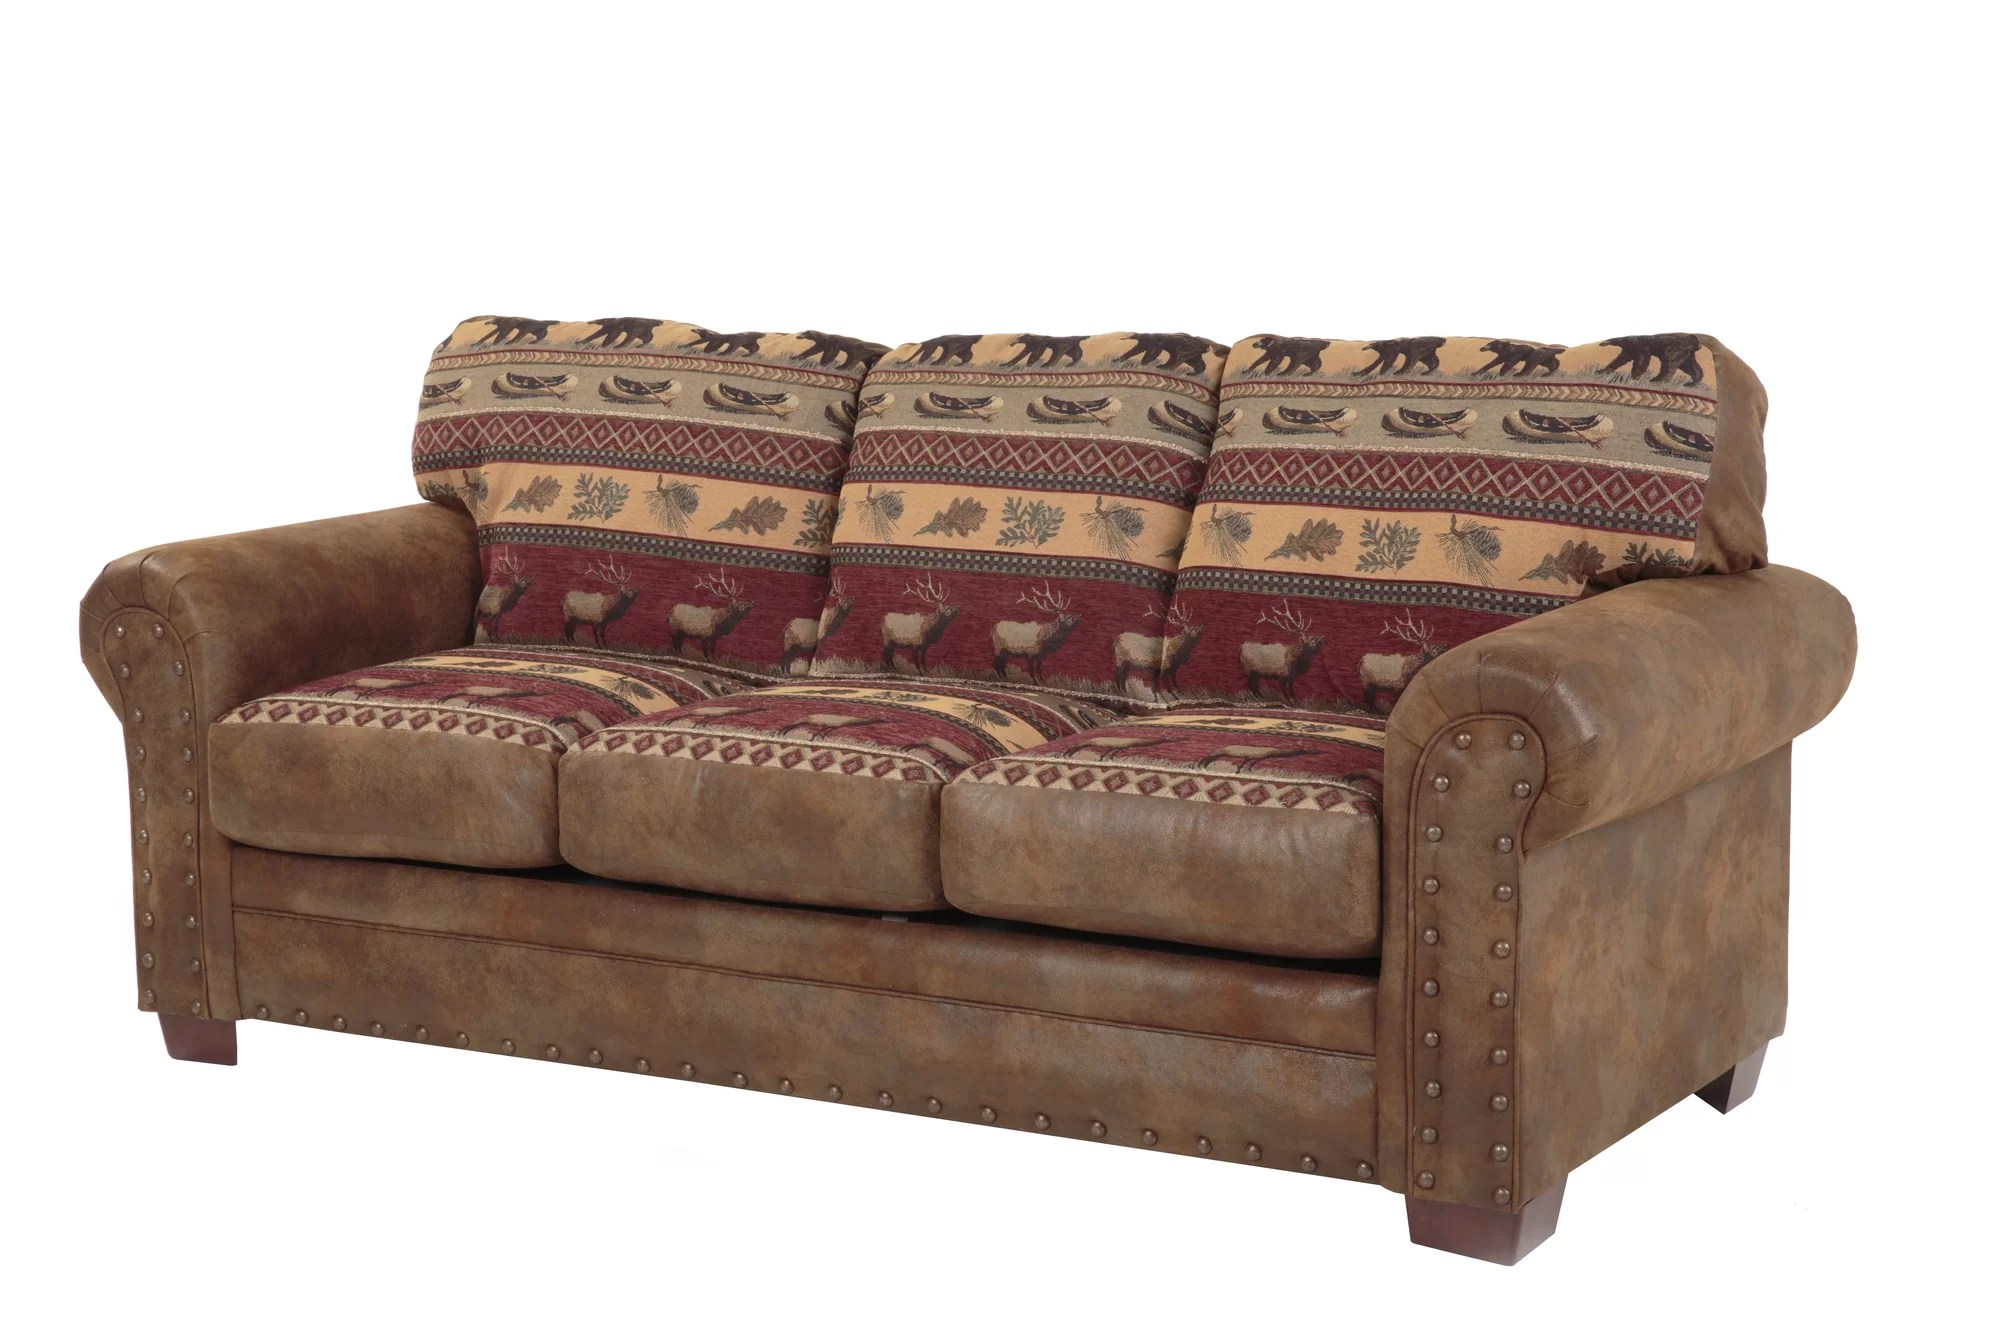 american furniture sleeper sofa decorating ideas with red leather classics sierra lodge ebay